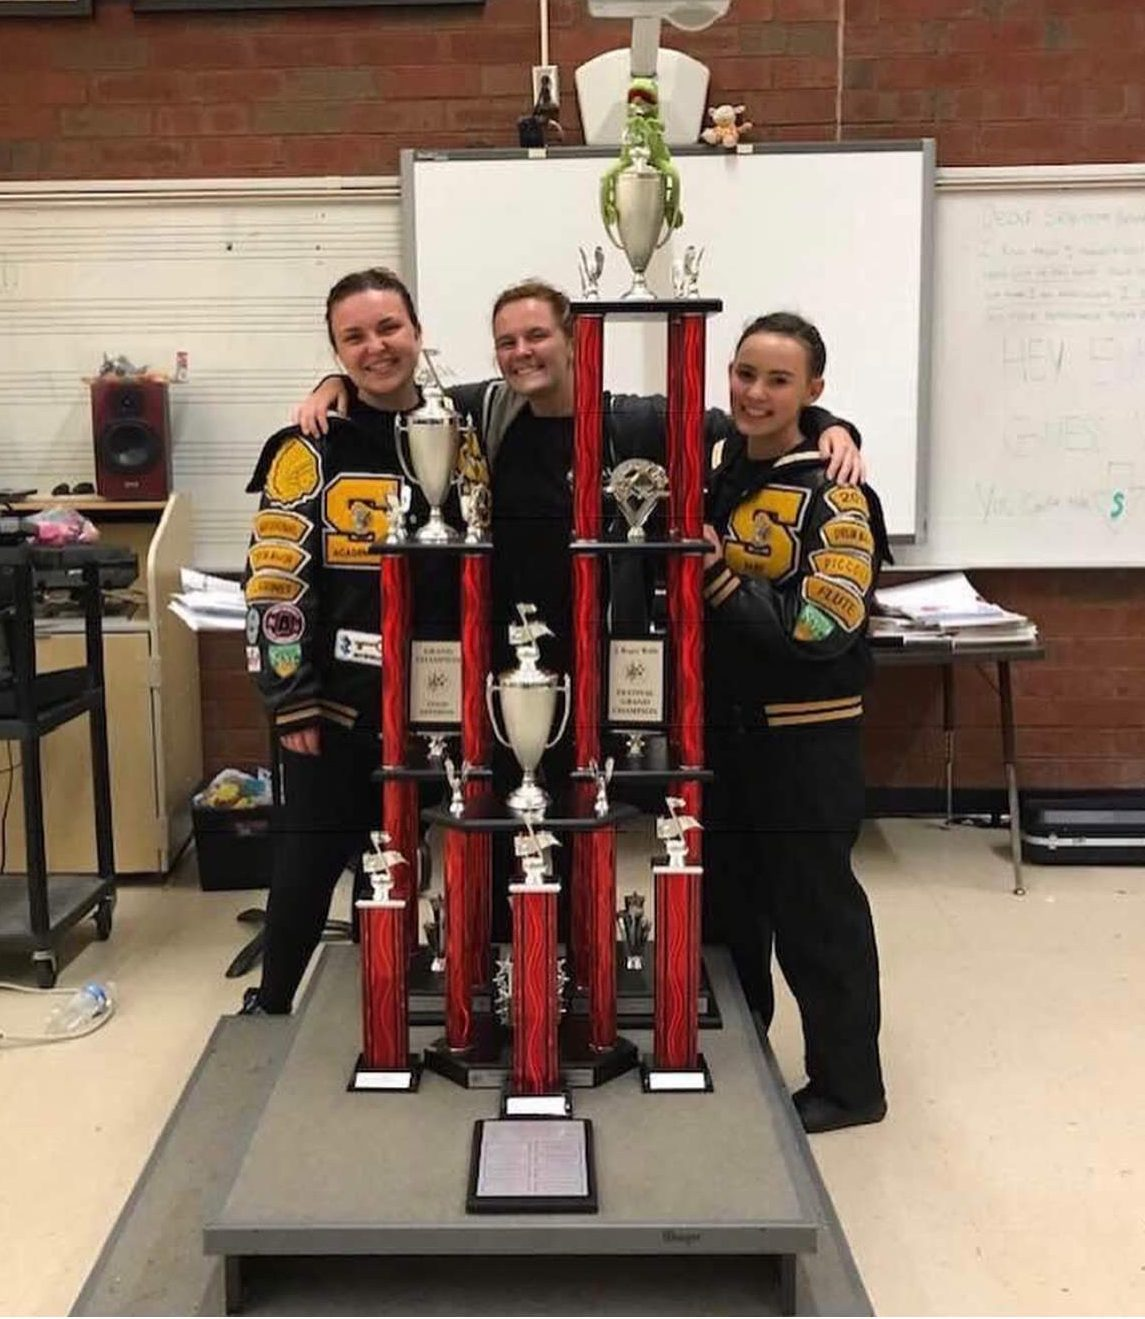 Senior Hannah Becker, junior Cassie Myers, and senior Mackenzie Weston show off the Grand Champion award from the Greater Atlanta Marching Festival on Oct. 13, 2018. Becker, Myers, and Weston worked hard to become drum majors this year.